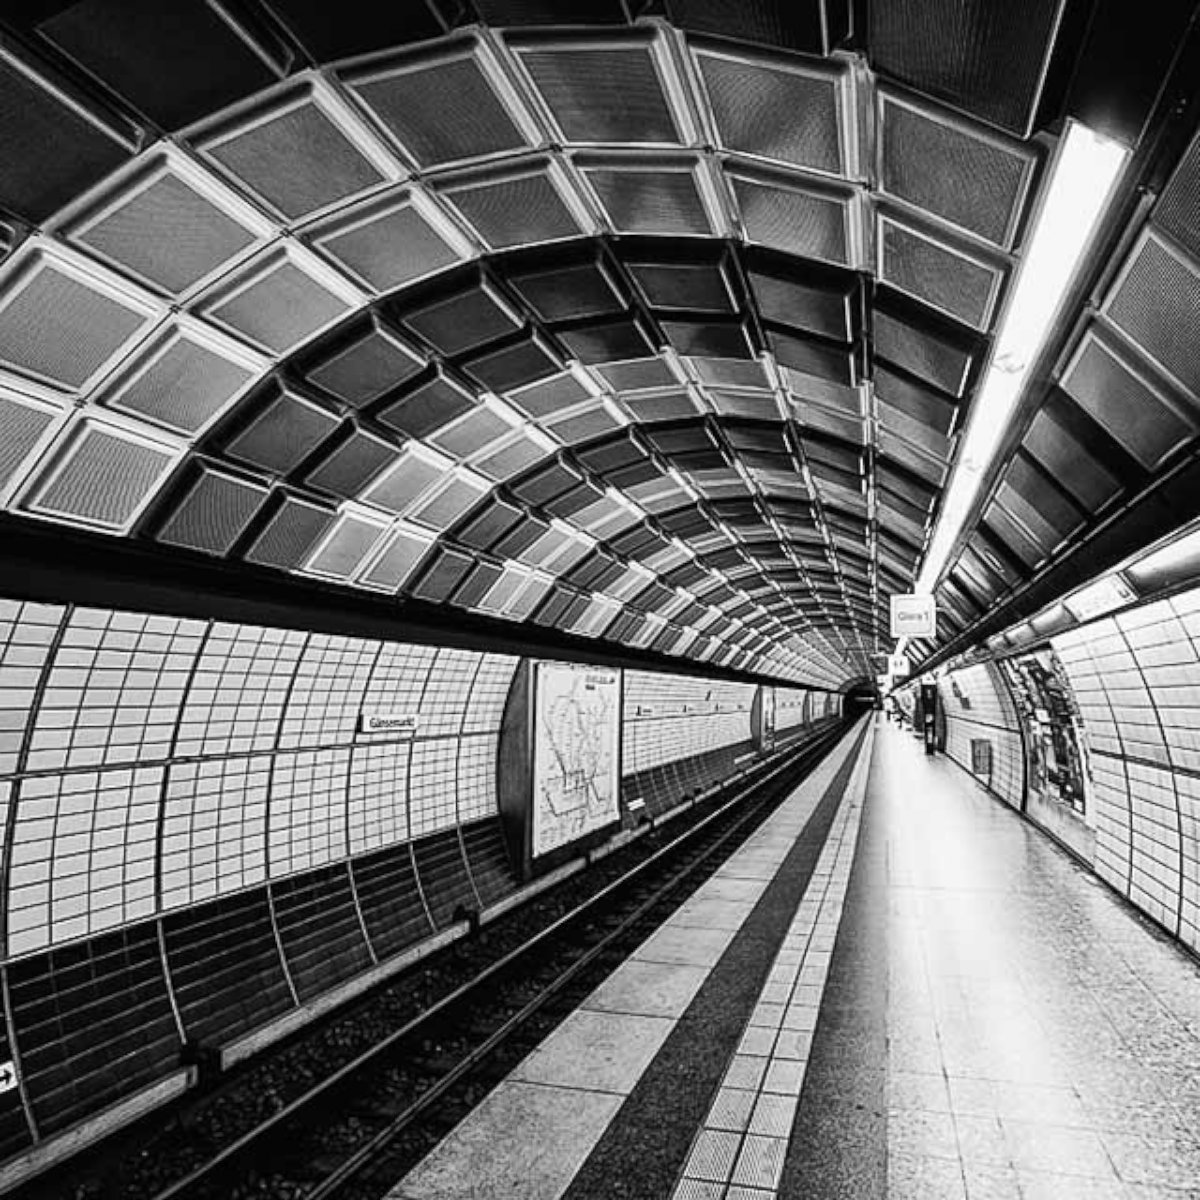 ht moritz braun hamburg metro ll 131016 vblog Behind the Lines: Symmetry and Repetition, in Photos